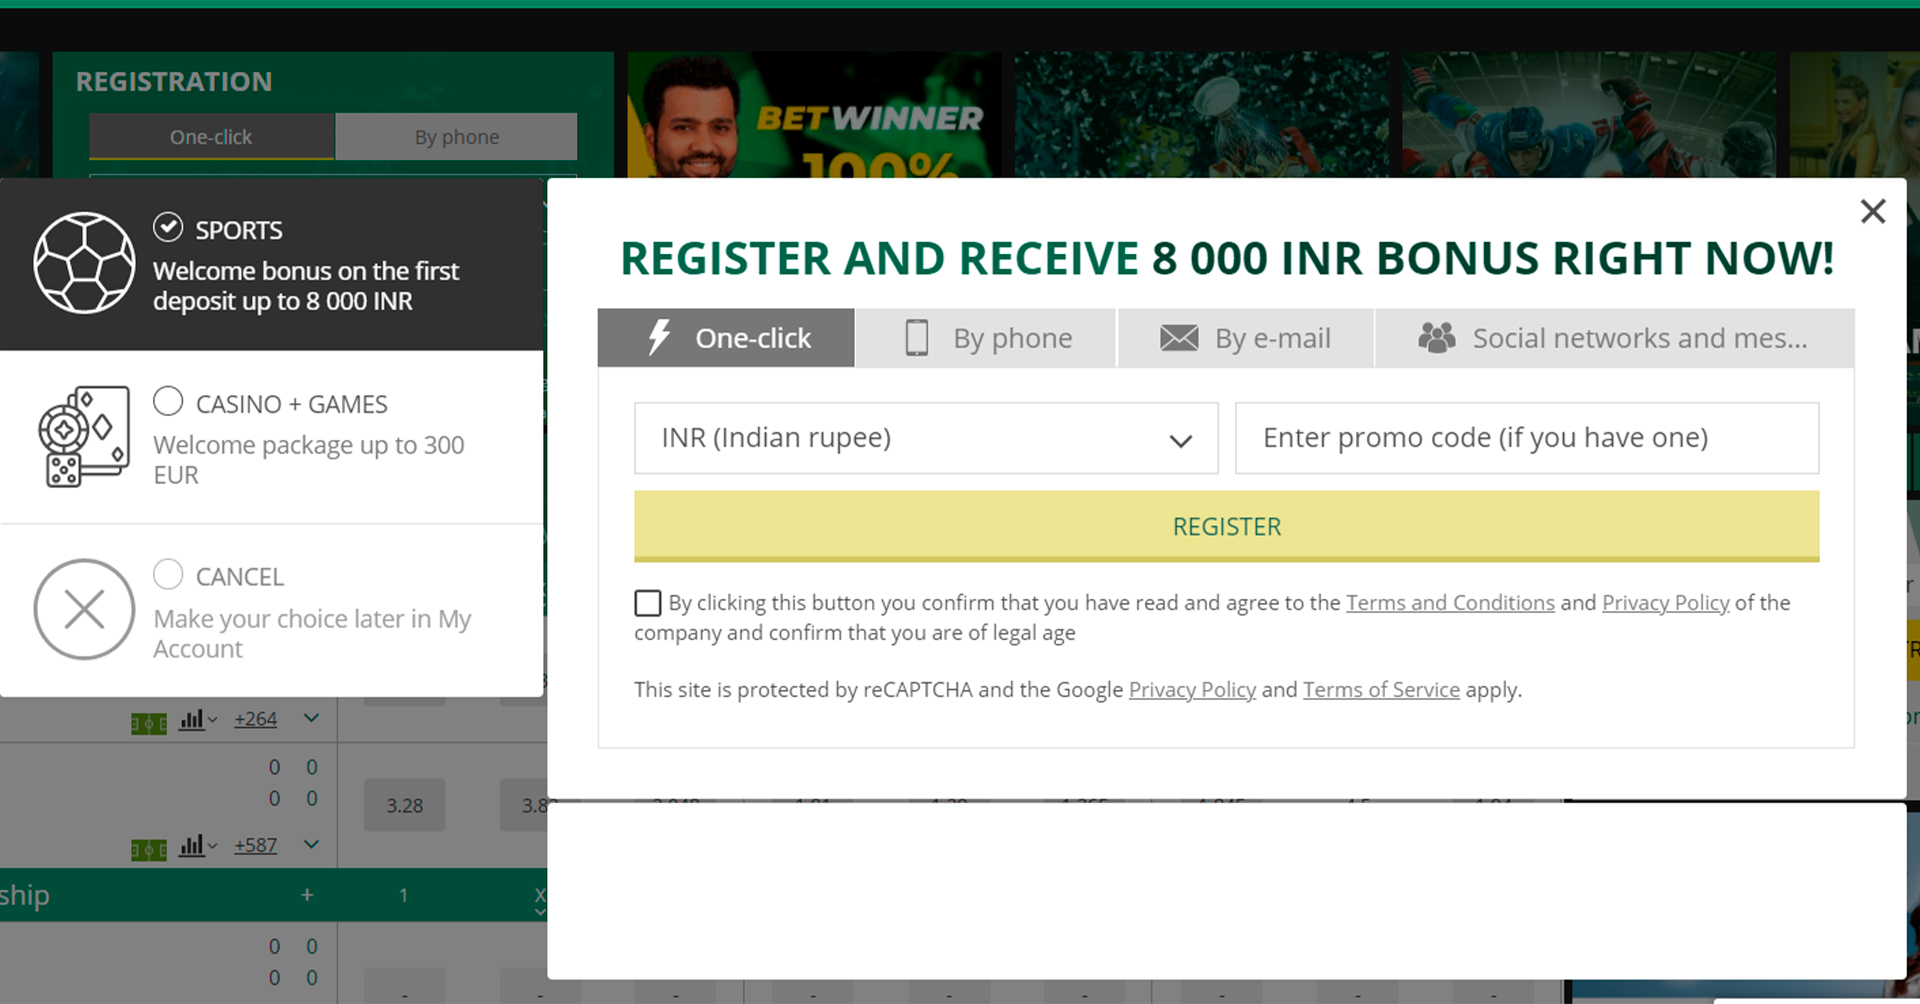 Only verified bettors will be able to withdraw winnings.